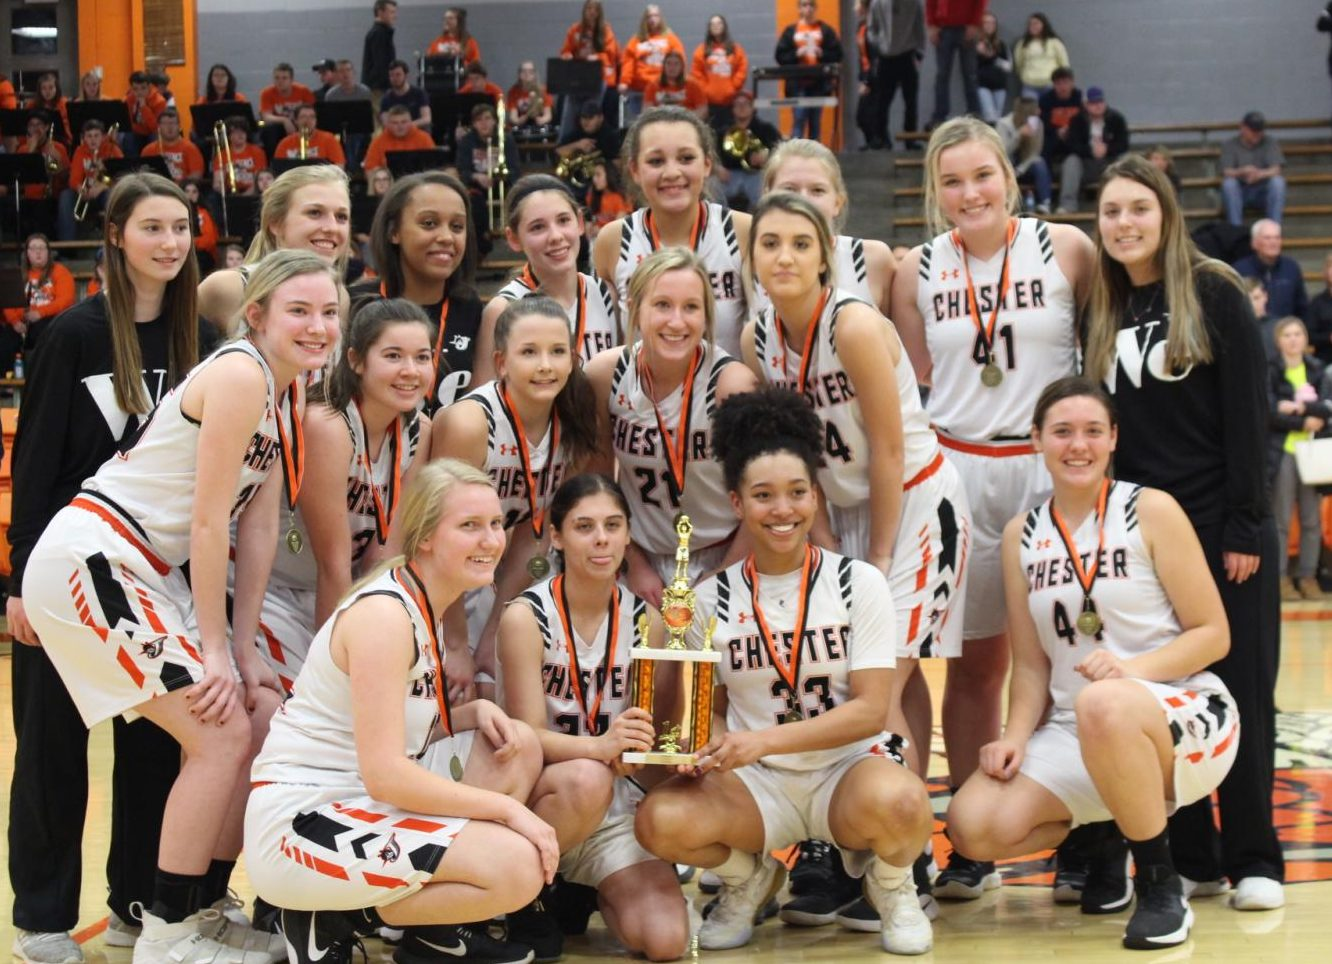 The Chester Lady Yellow Jackets won the Lady Jackets Mid-Winter Classic.